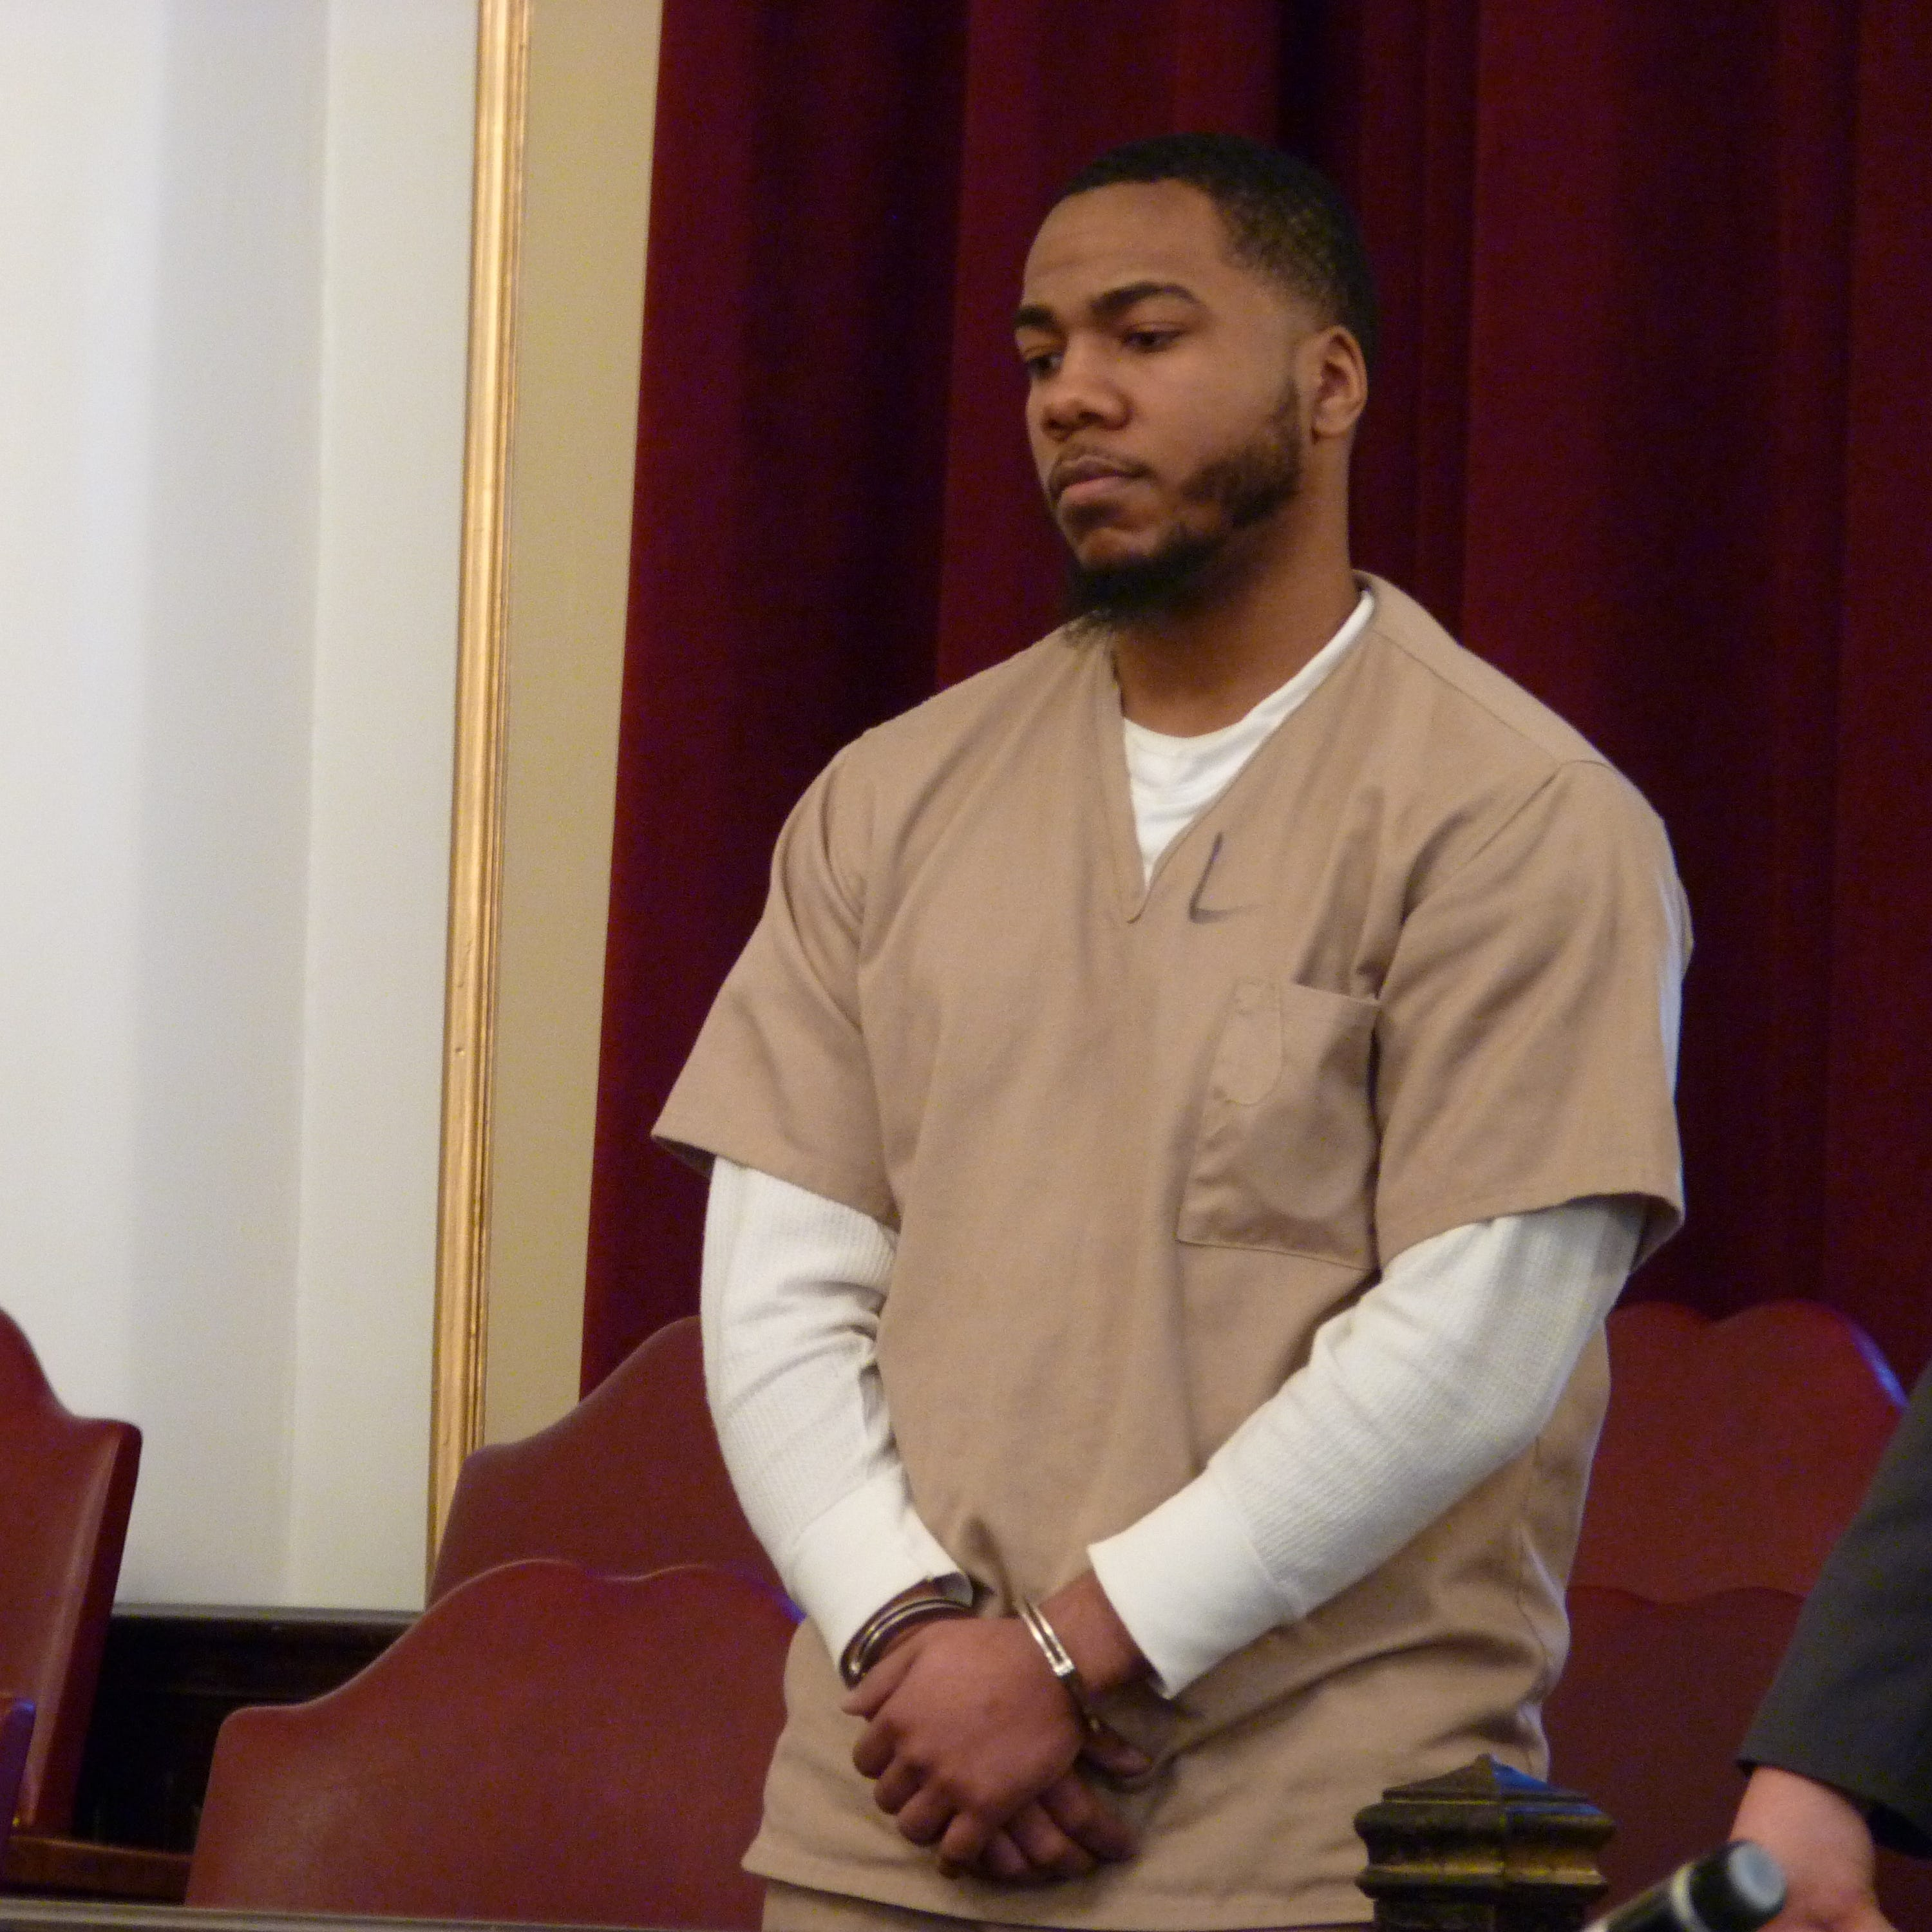 Rahway man sentenced to 58 years in prison for murdering Edison taxi driver, injuring woman